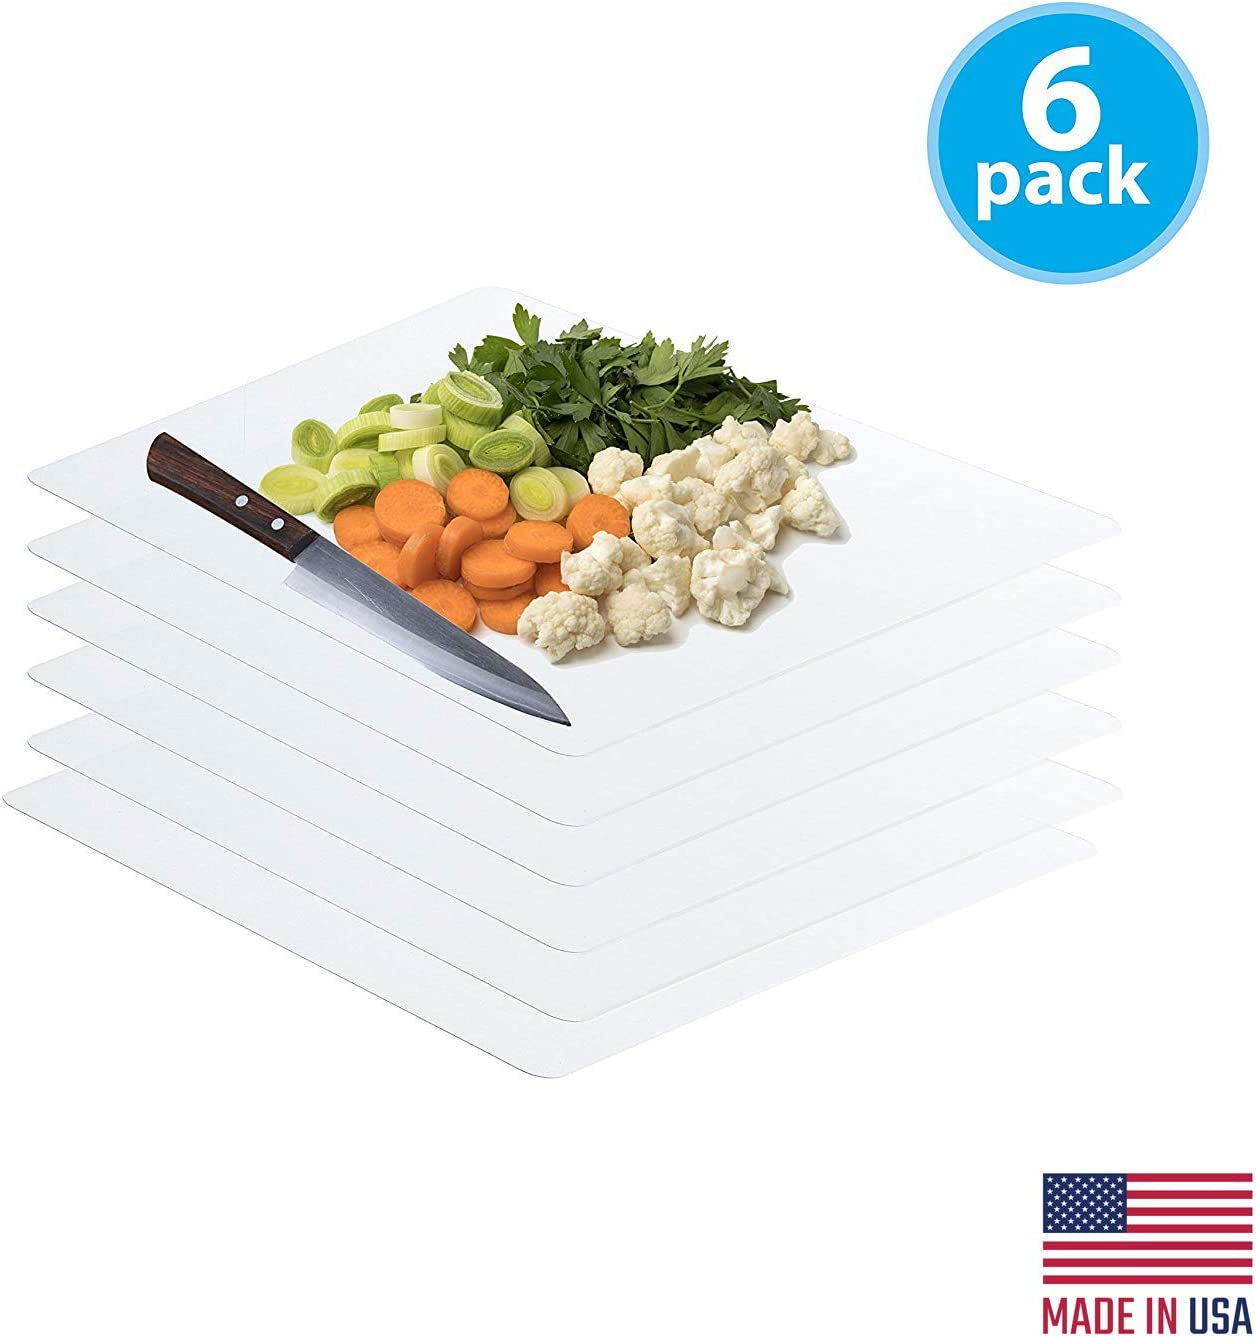 Frosted Clear Flexible Extra Thick Plastic Cutting Board Mat (12 x 15), Set of 6 by Sterling for Life